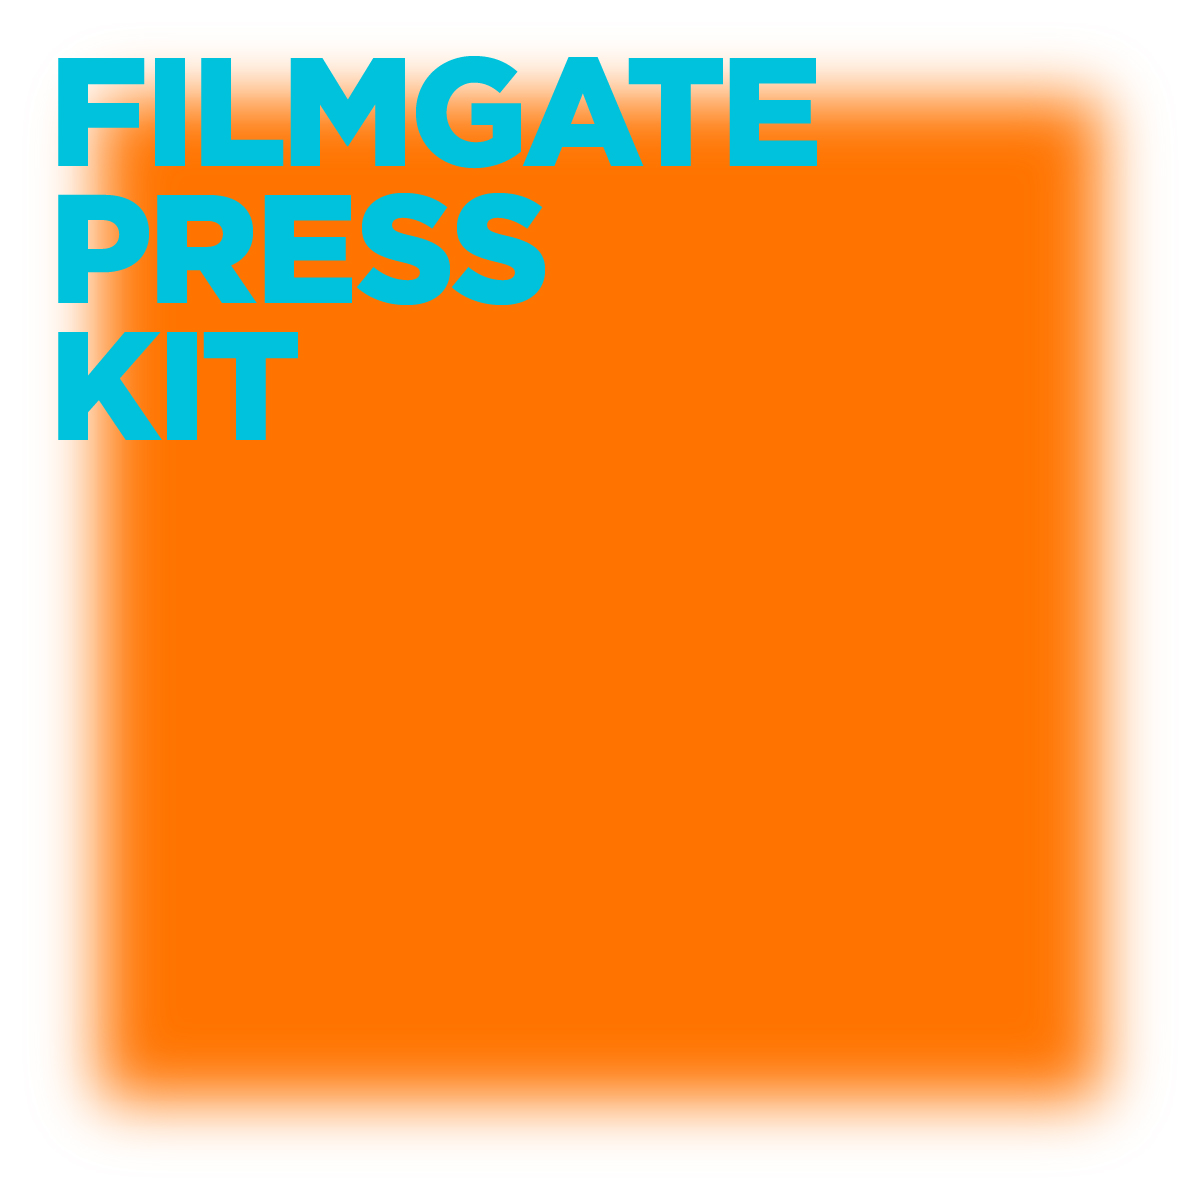 FG_PRESS-KIT.jpg